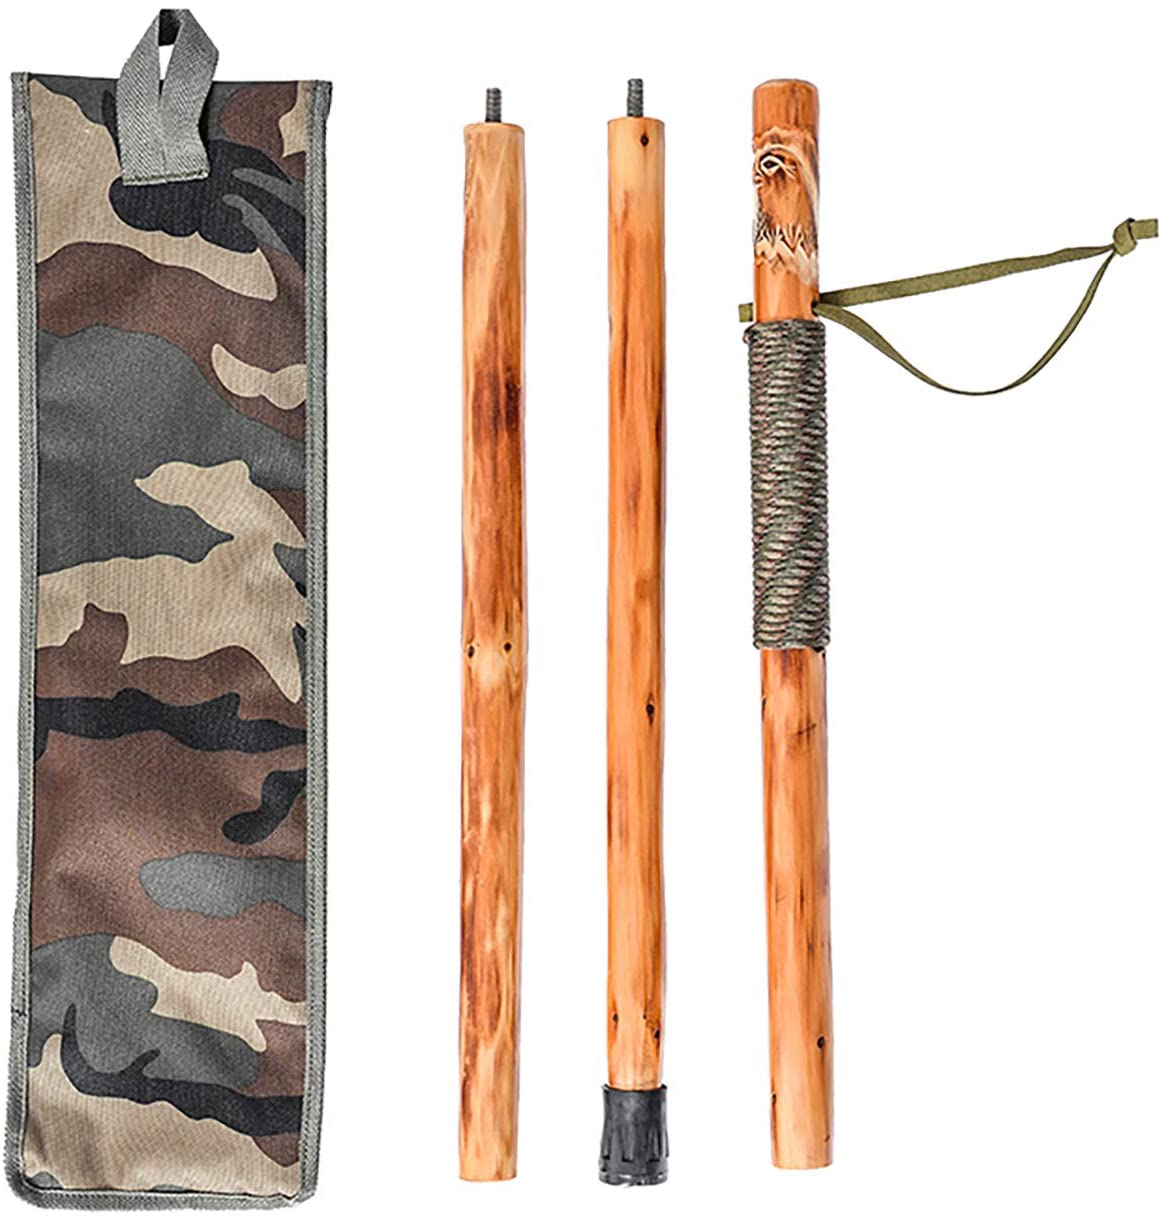 FOREST PILOT 3 Piece Wooden Walking Stick Eagle Carving (Nature Color, 55 Inches, 1 Piece)